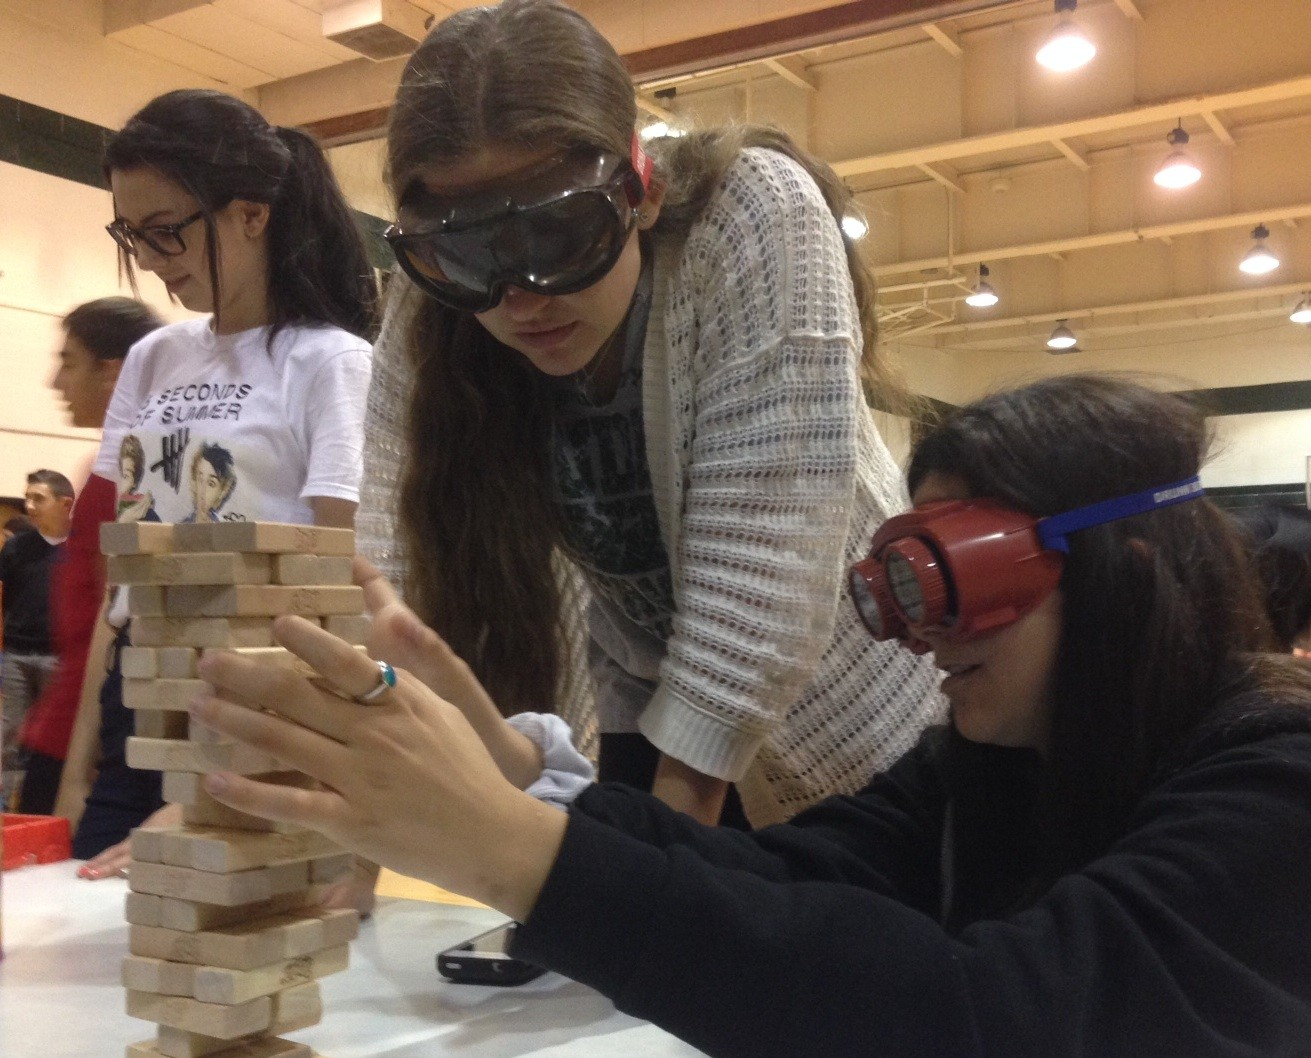 Tenth-graders Mikayla Leef and Cara Slovinsky tried to stack blocks while wearing the goggles.